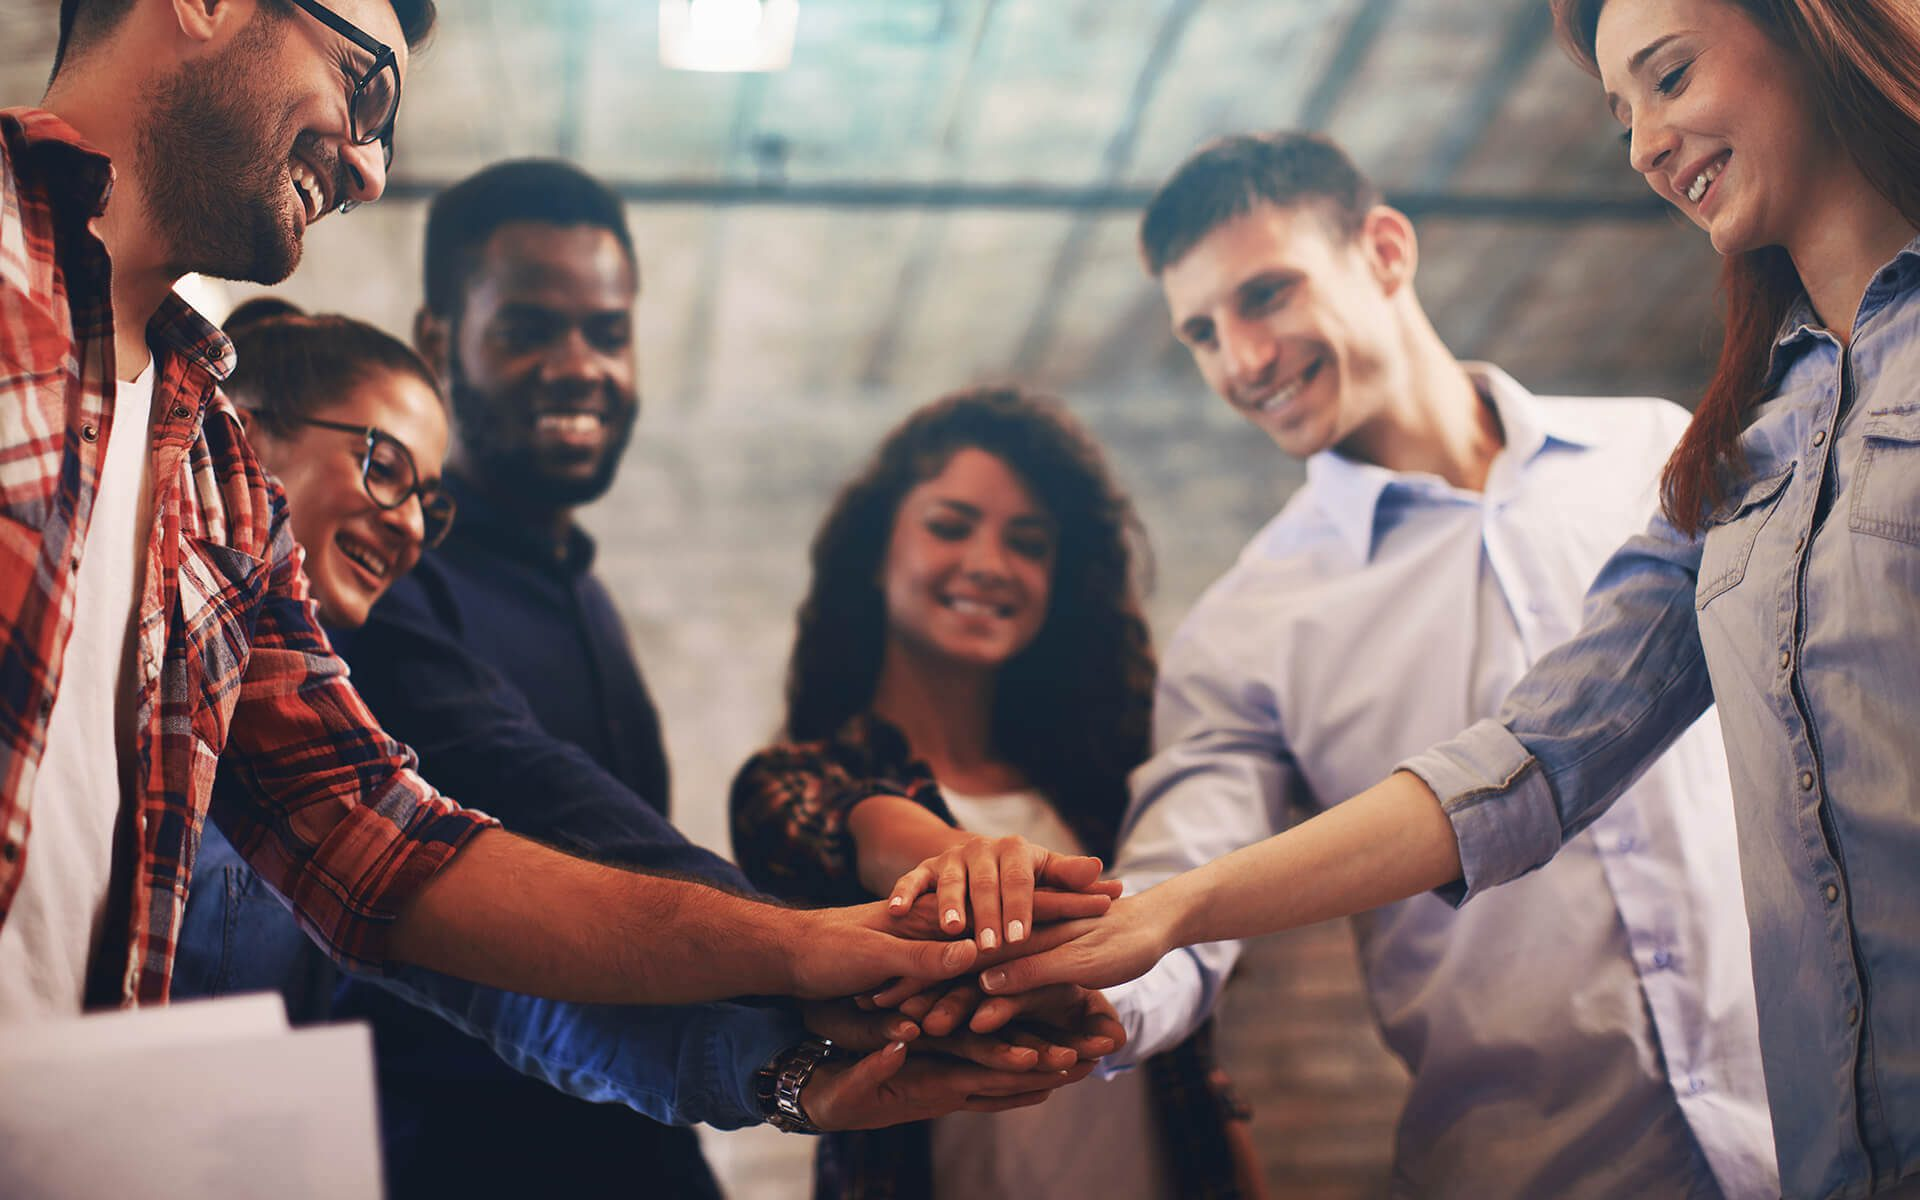 Two ways insurance agencies can attract millennial employees